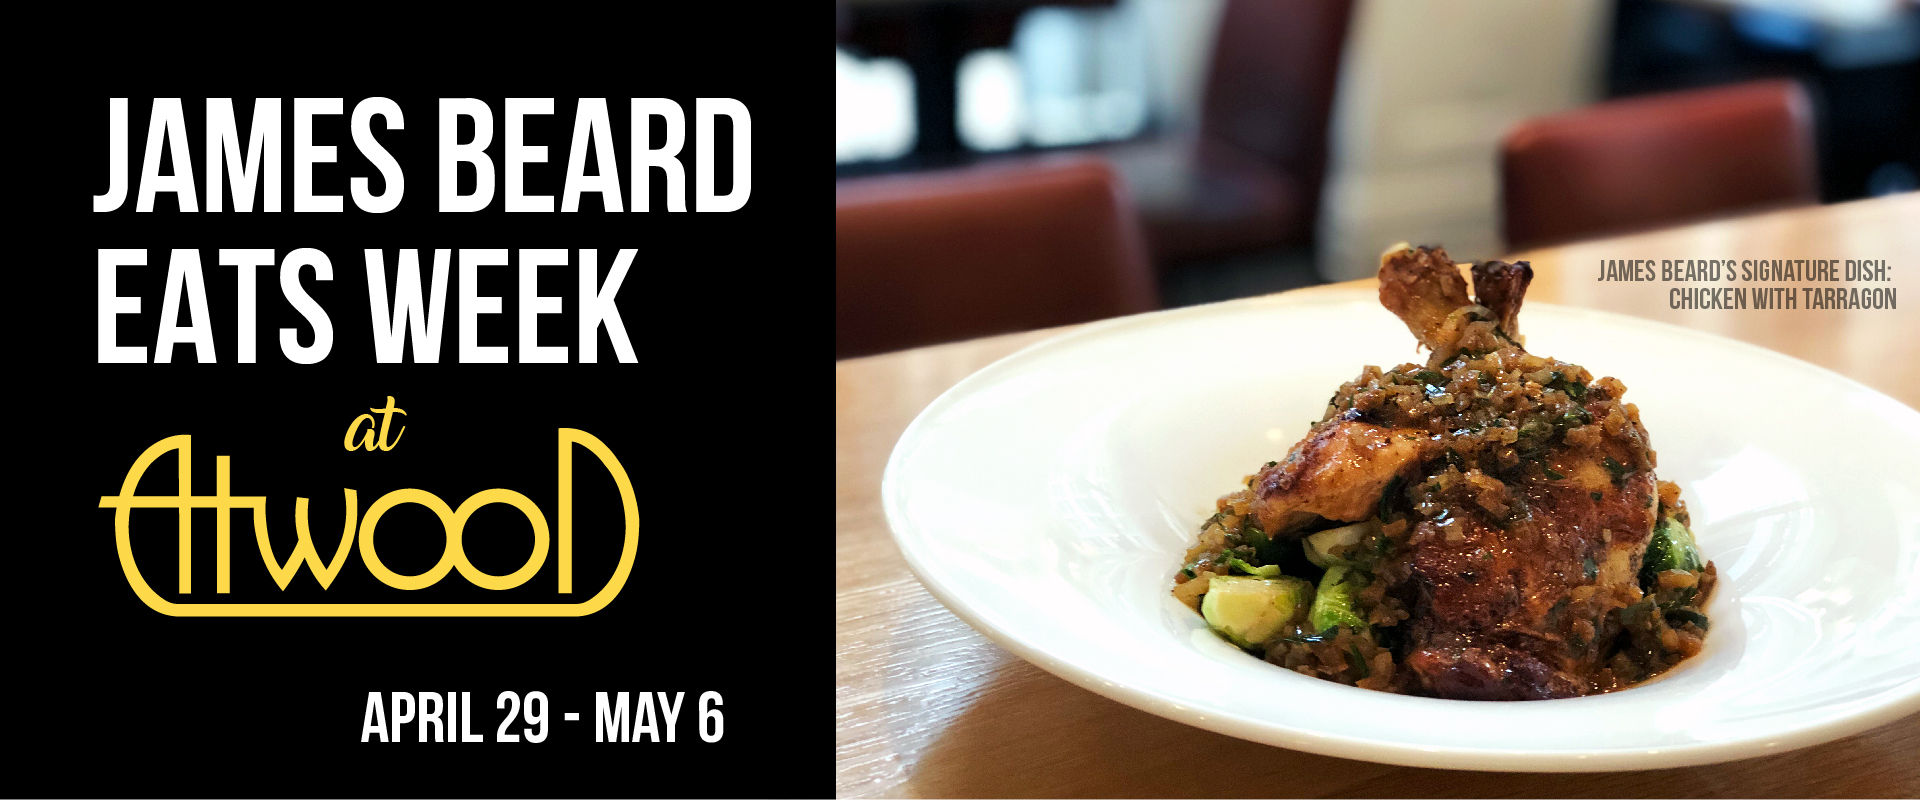 James Beard Week E-Mail Header.jpg